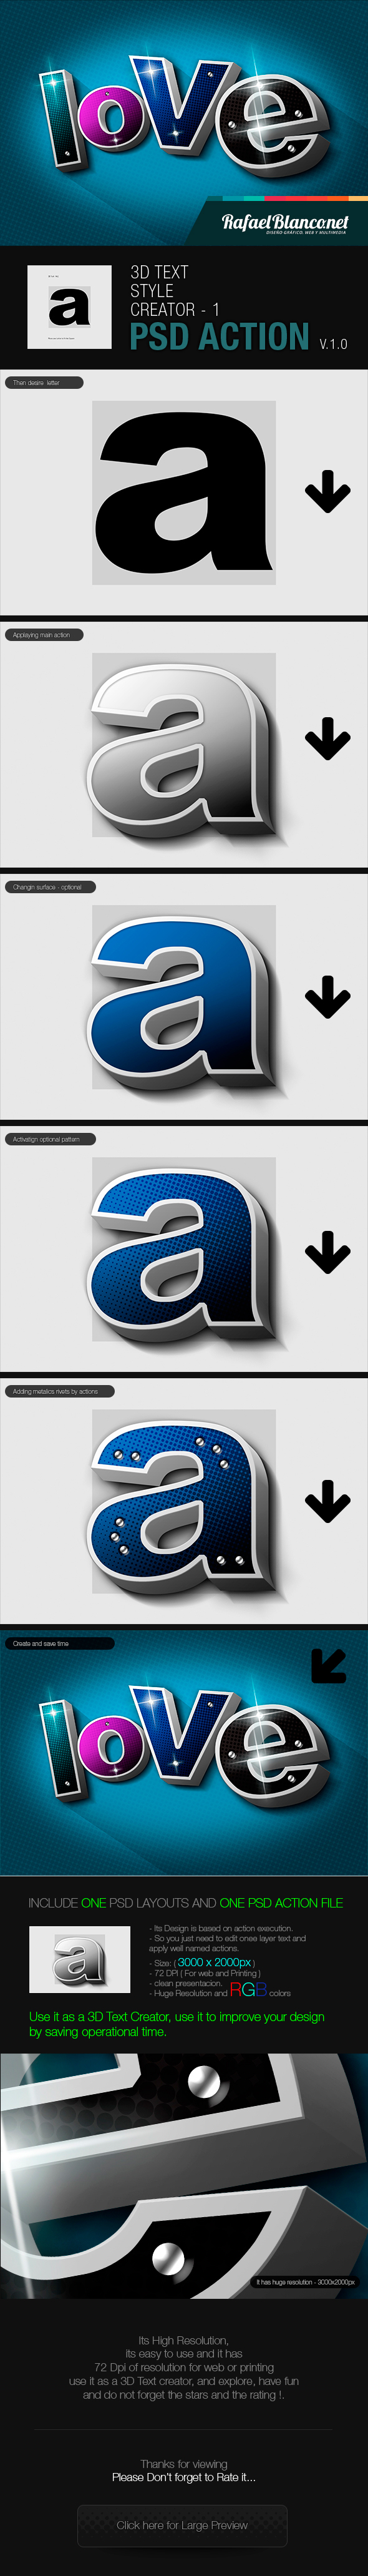 3D Text Styling by Actions - 1 - Actions Photoshop